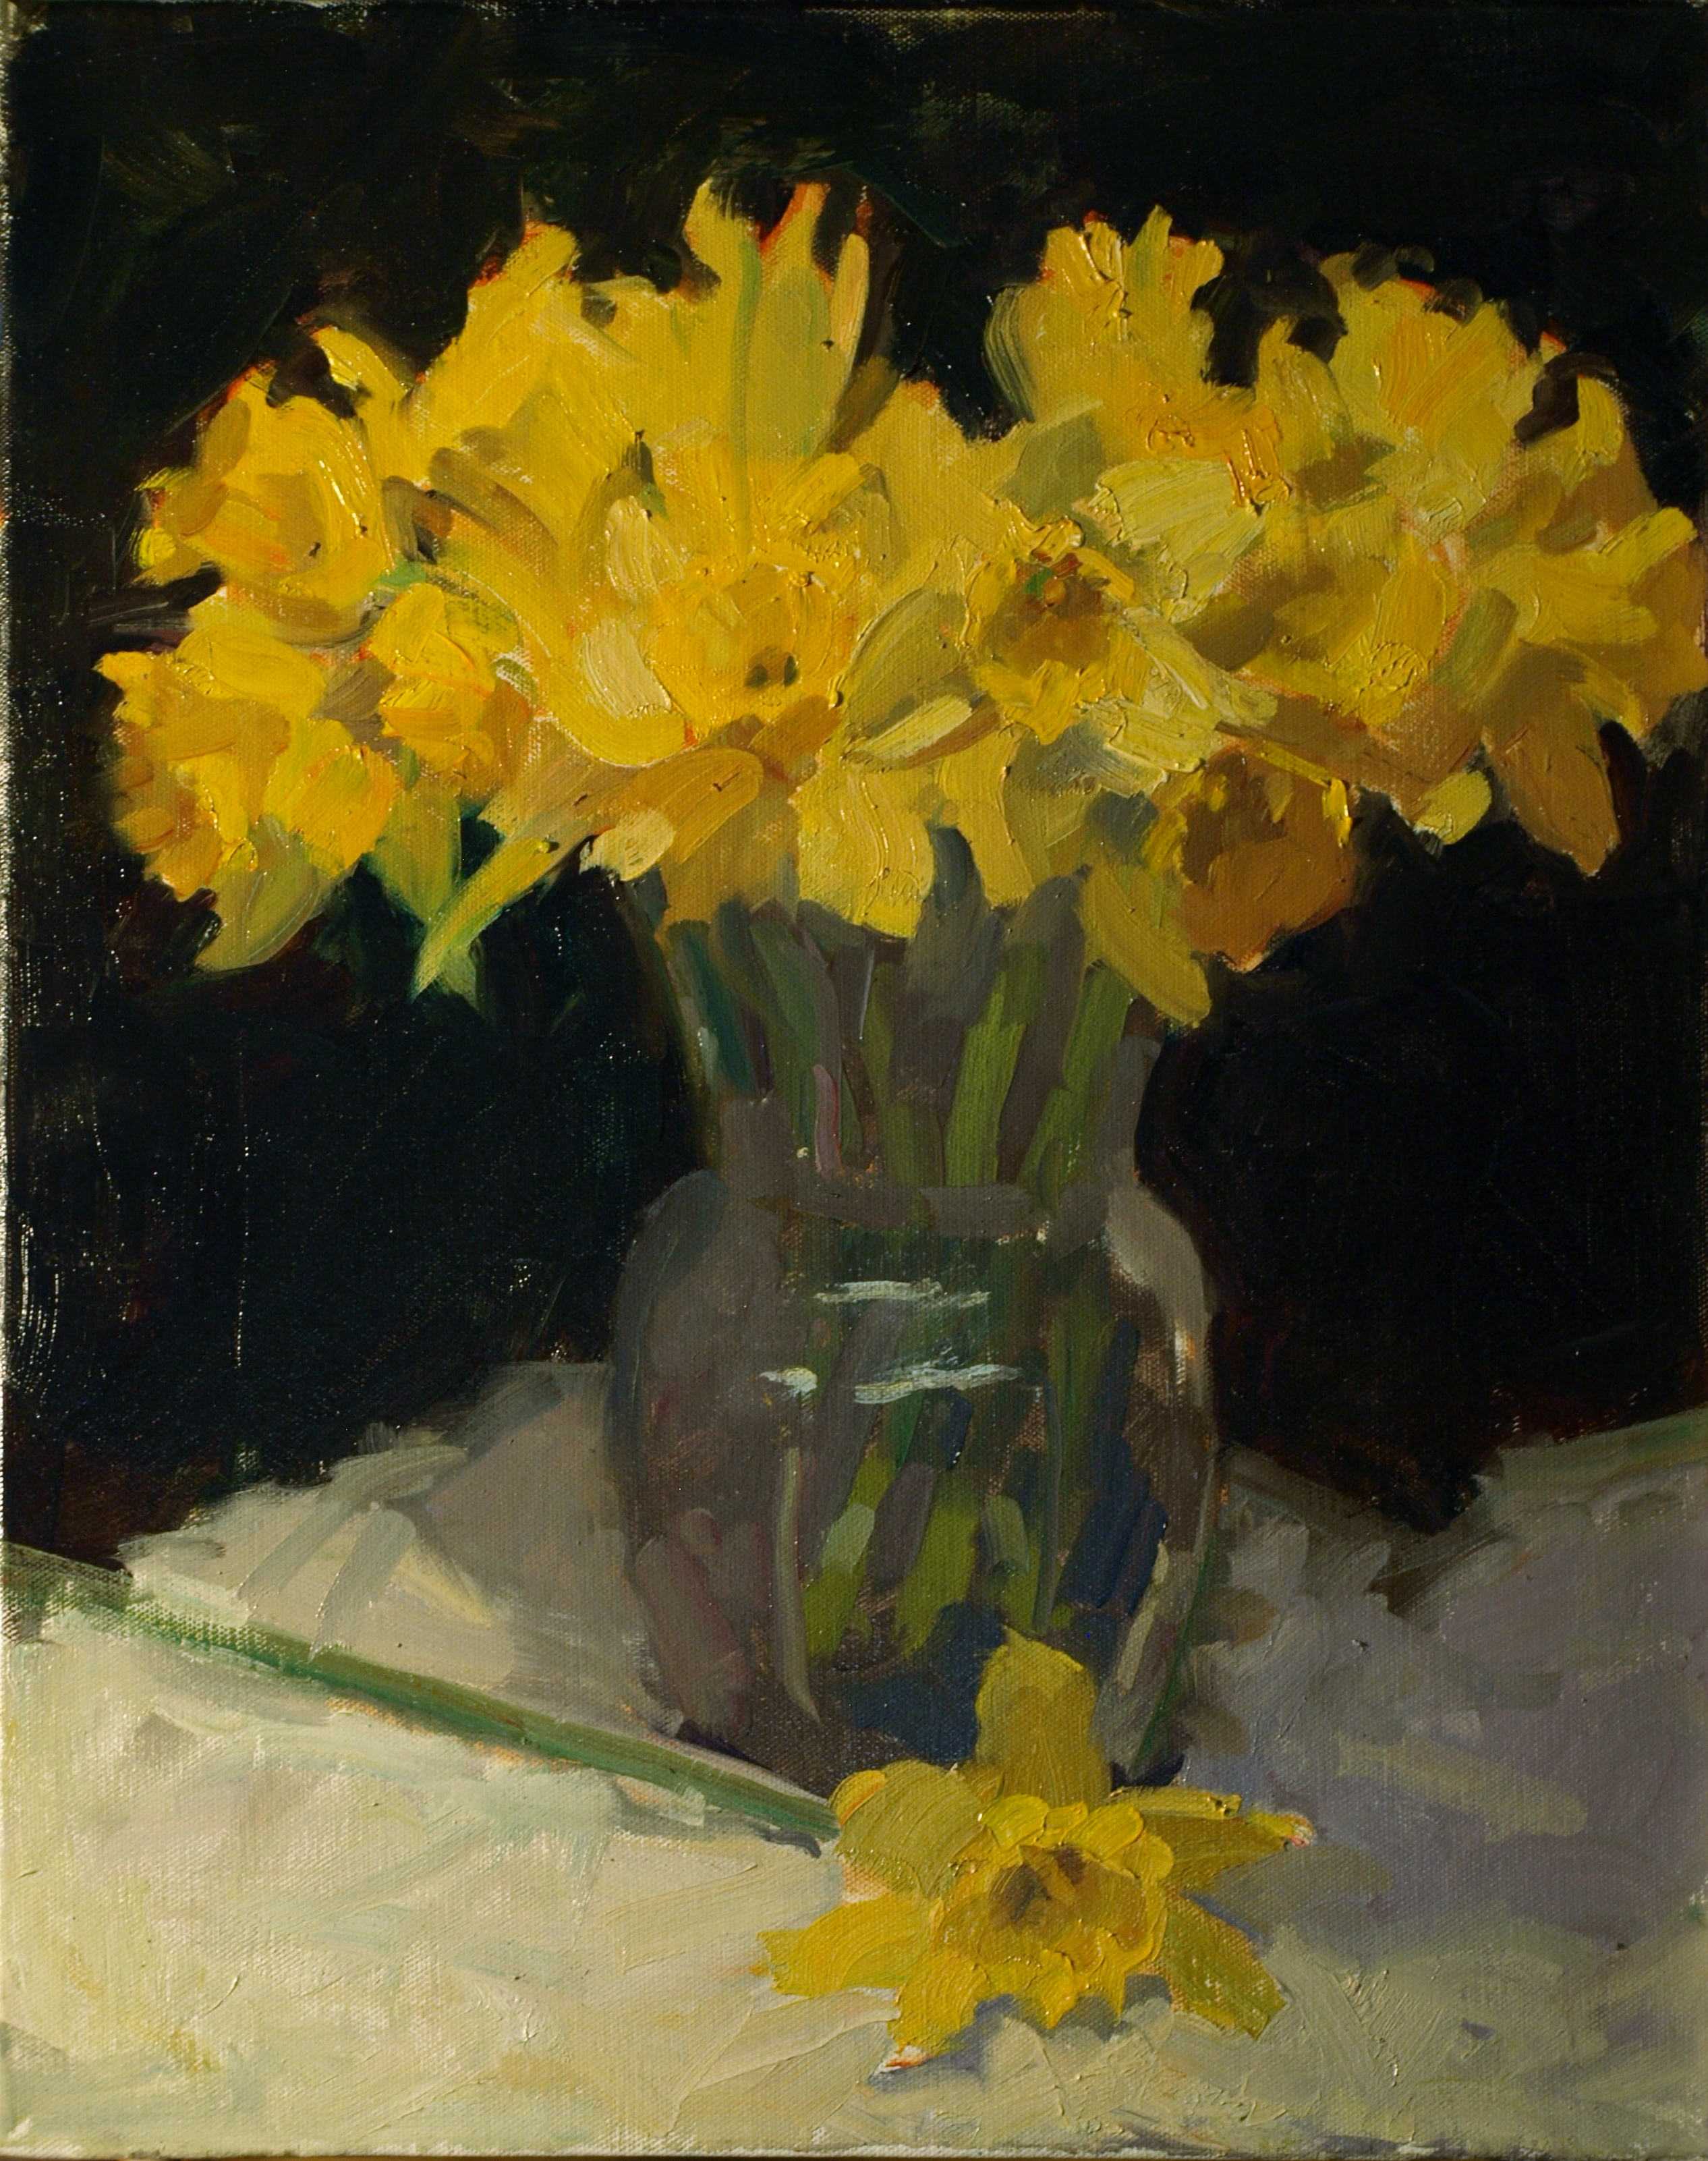 Daffodils in Glass Vase, Oil on Canvas, 20 x 16 Inches, by Susan Grisell, $525